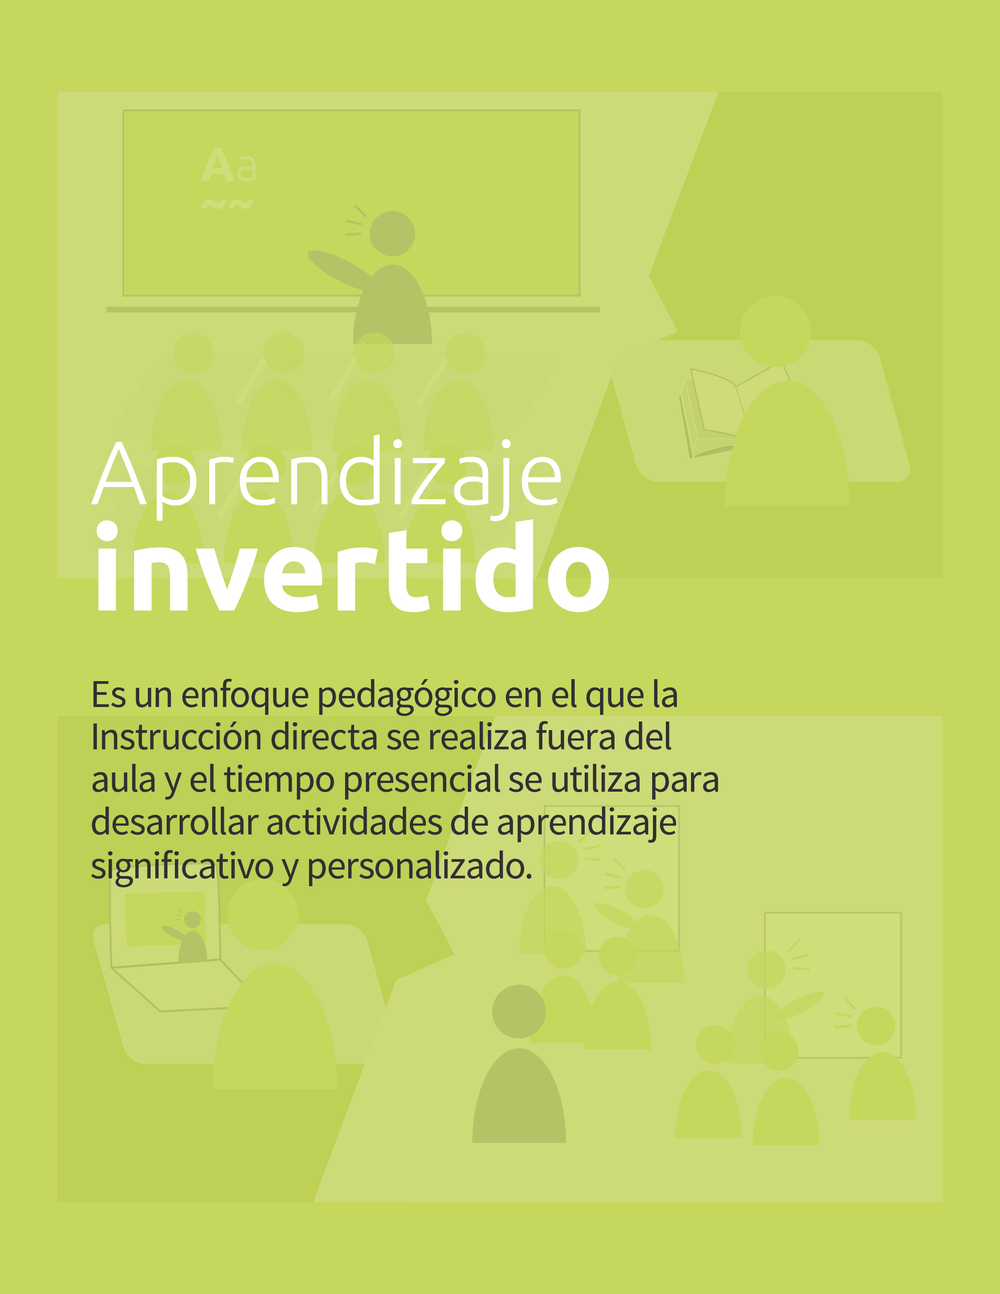 Edu Trends - Invertido5.png